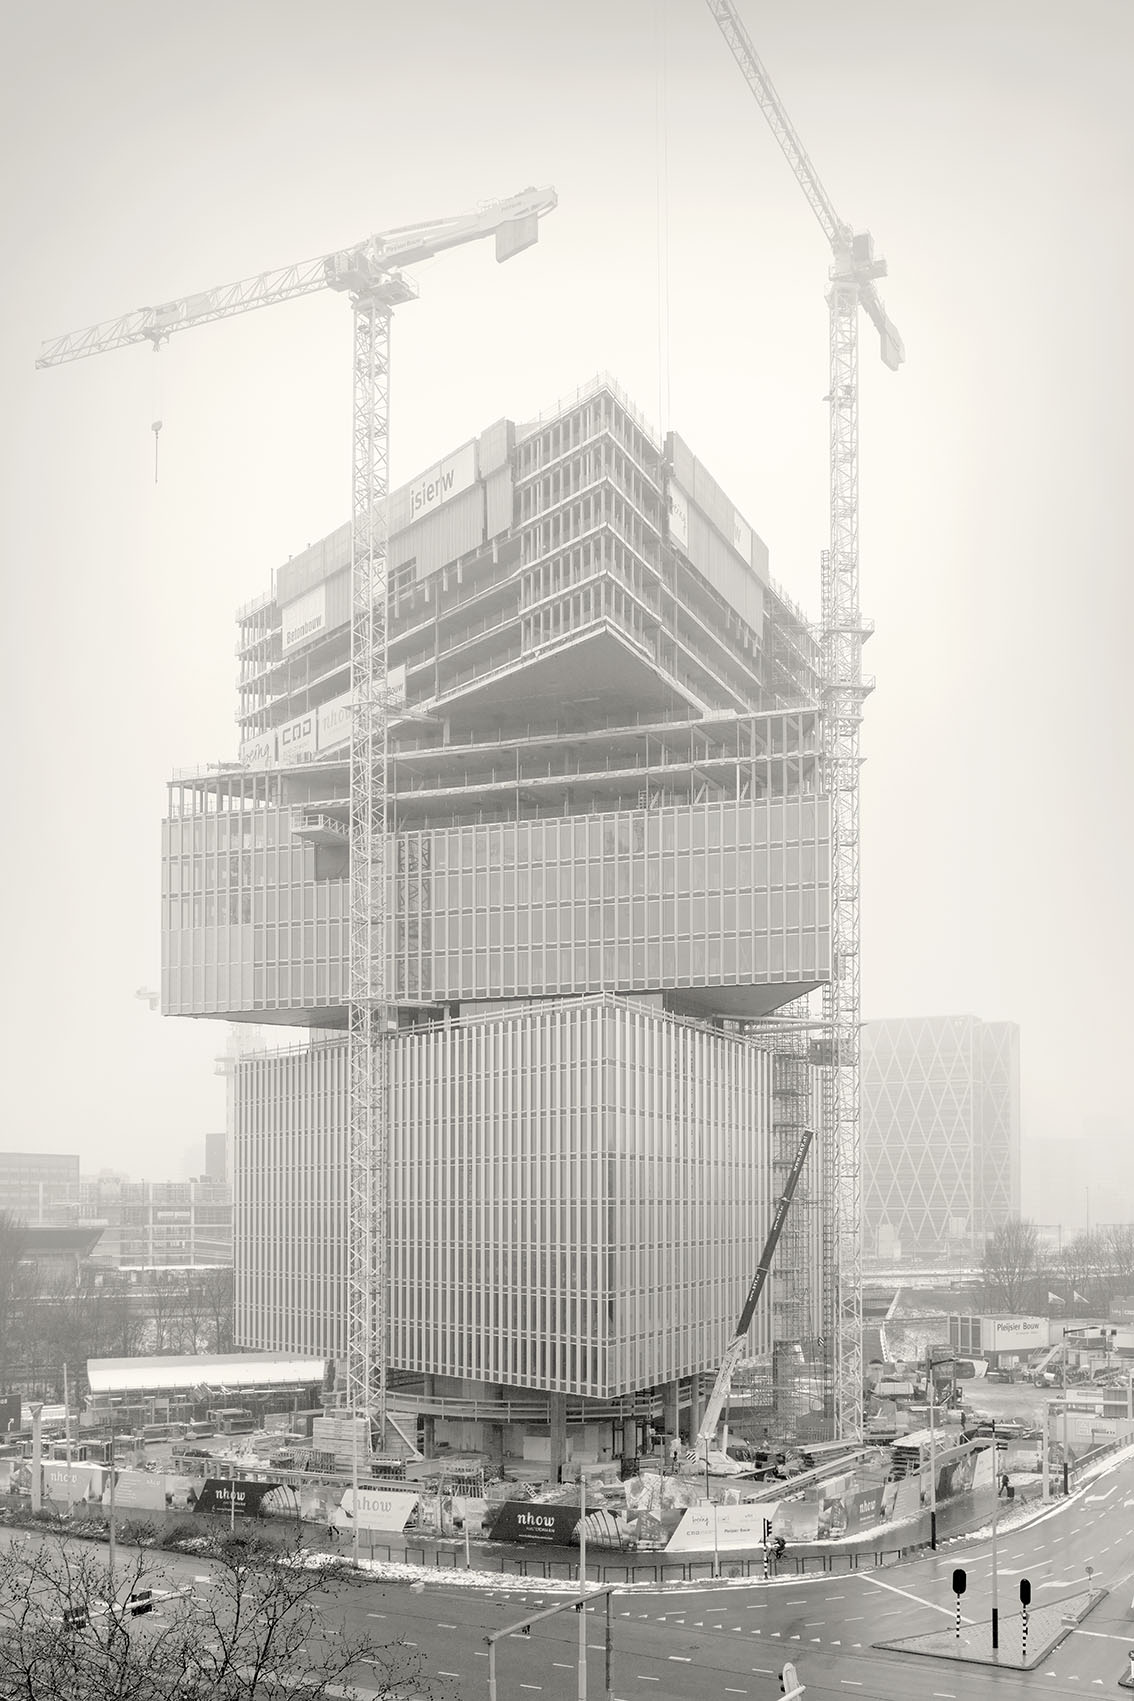 nhow Amsterdam RAI Hotel (under construction)